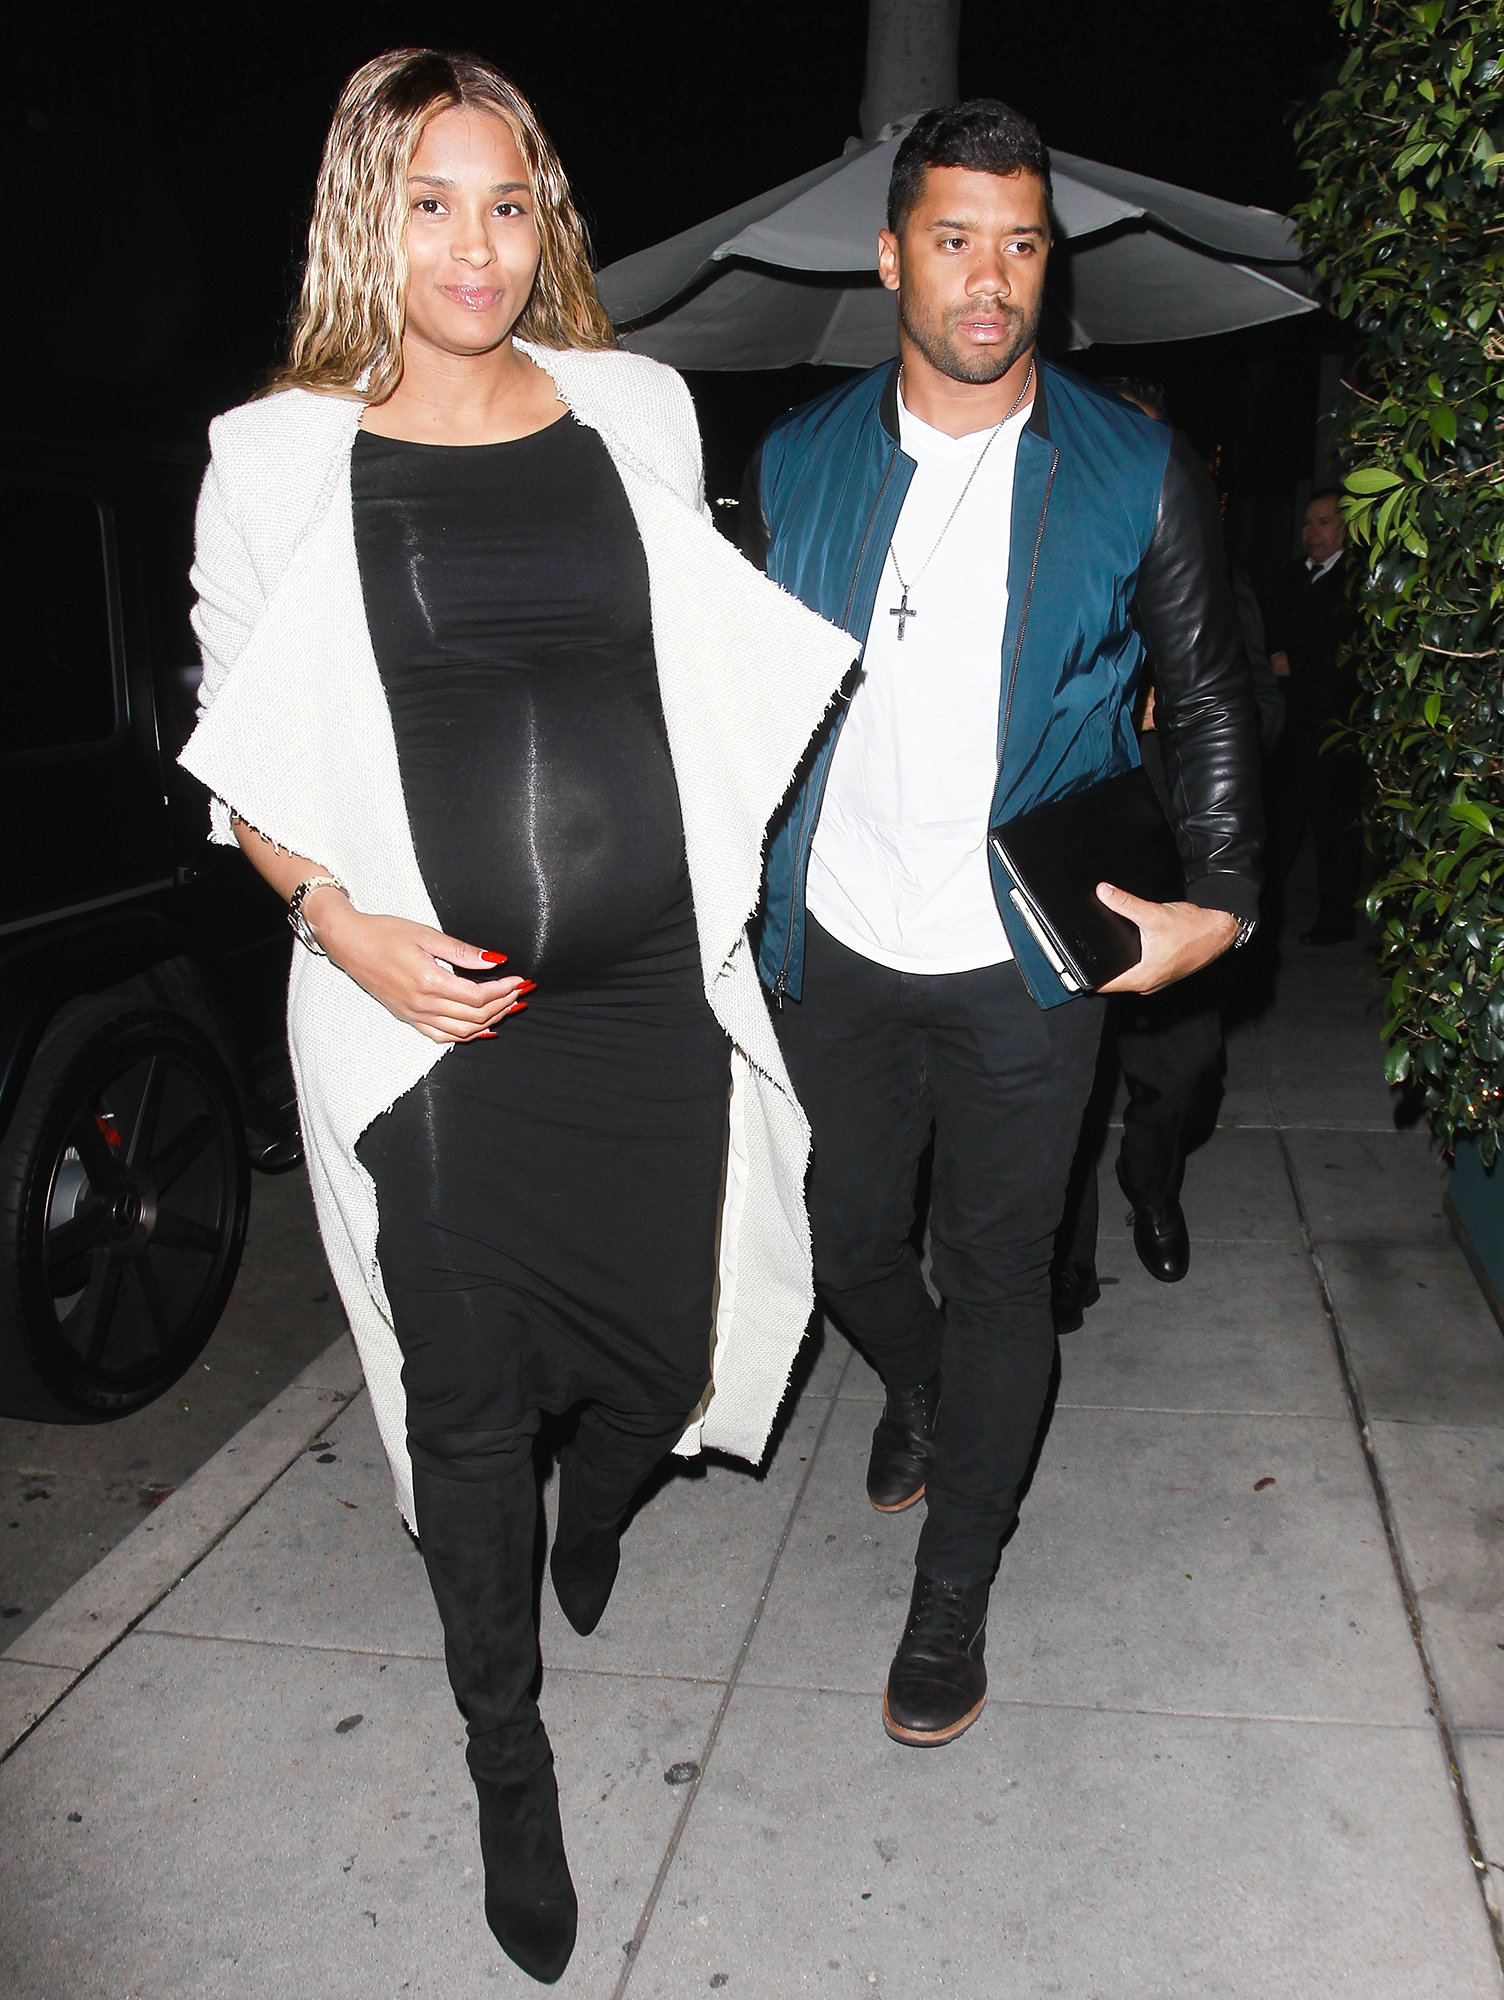 EXCLUSIVE: Singer Ciara and her husband Russell Wilson enjoy a date night together at Mr Chow in Los Angeles